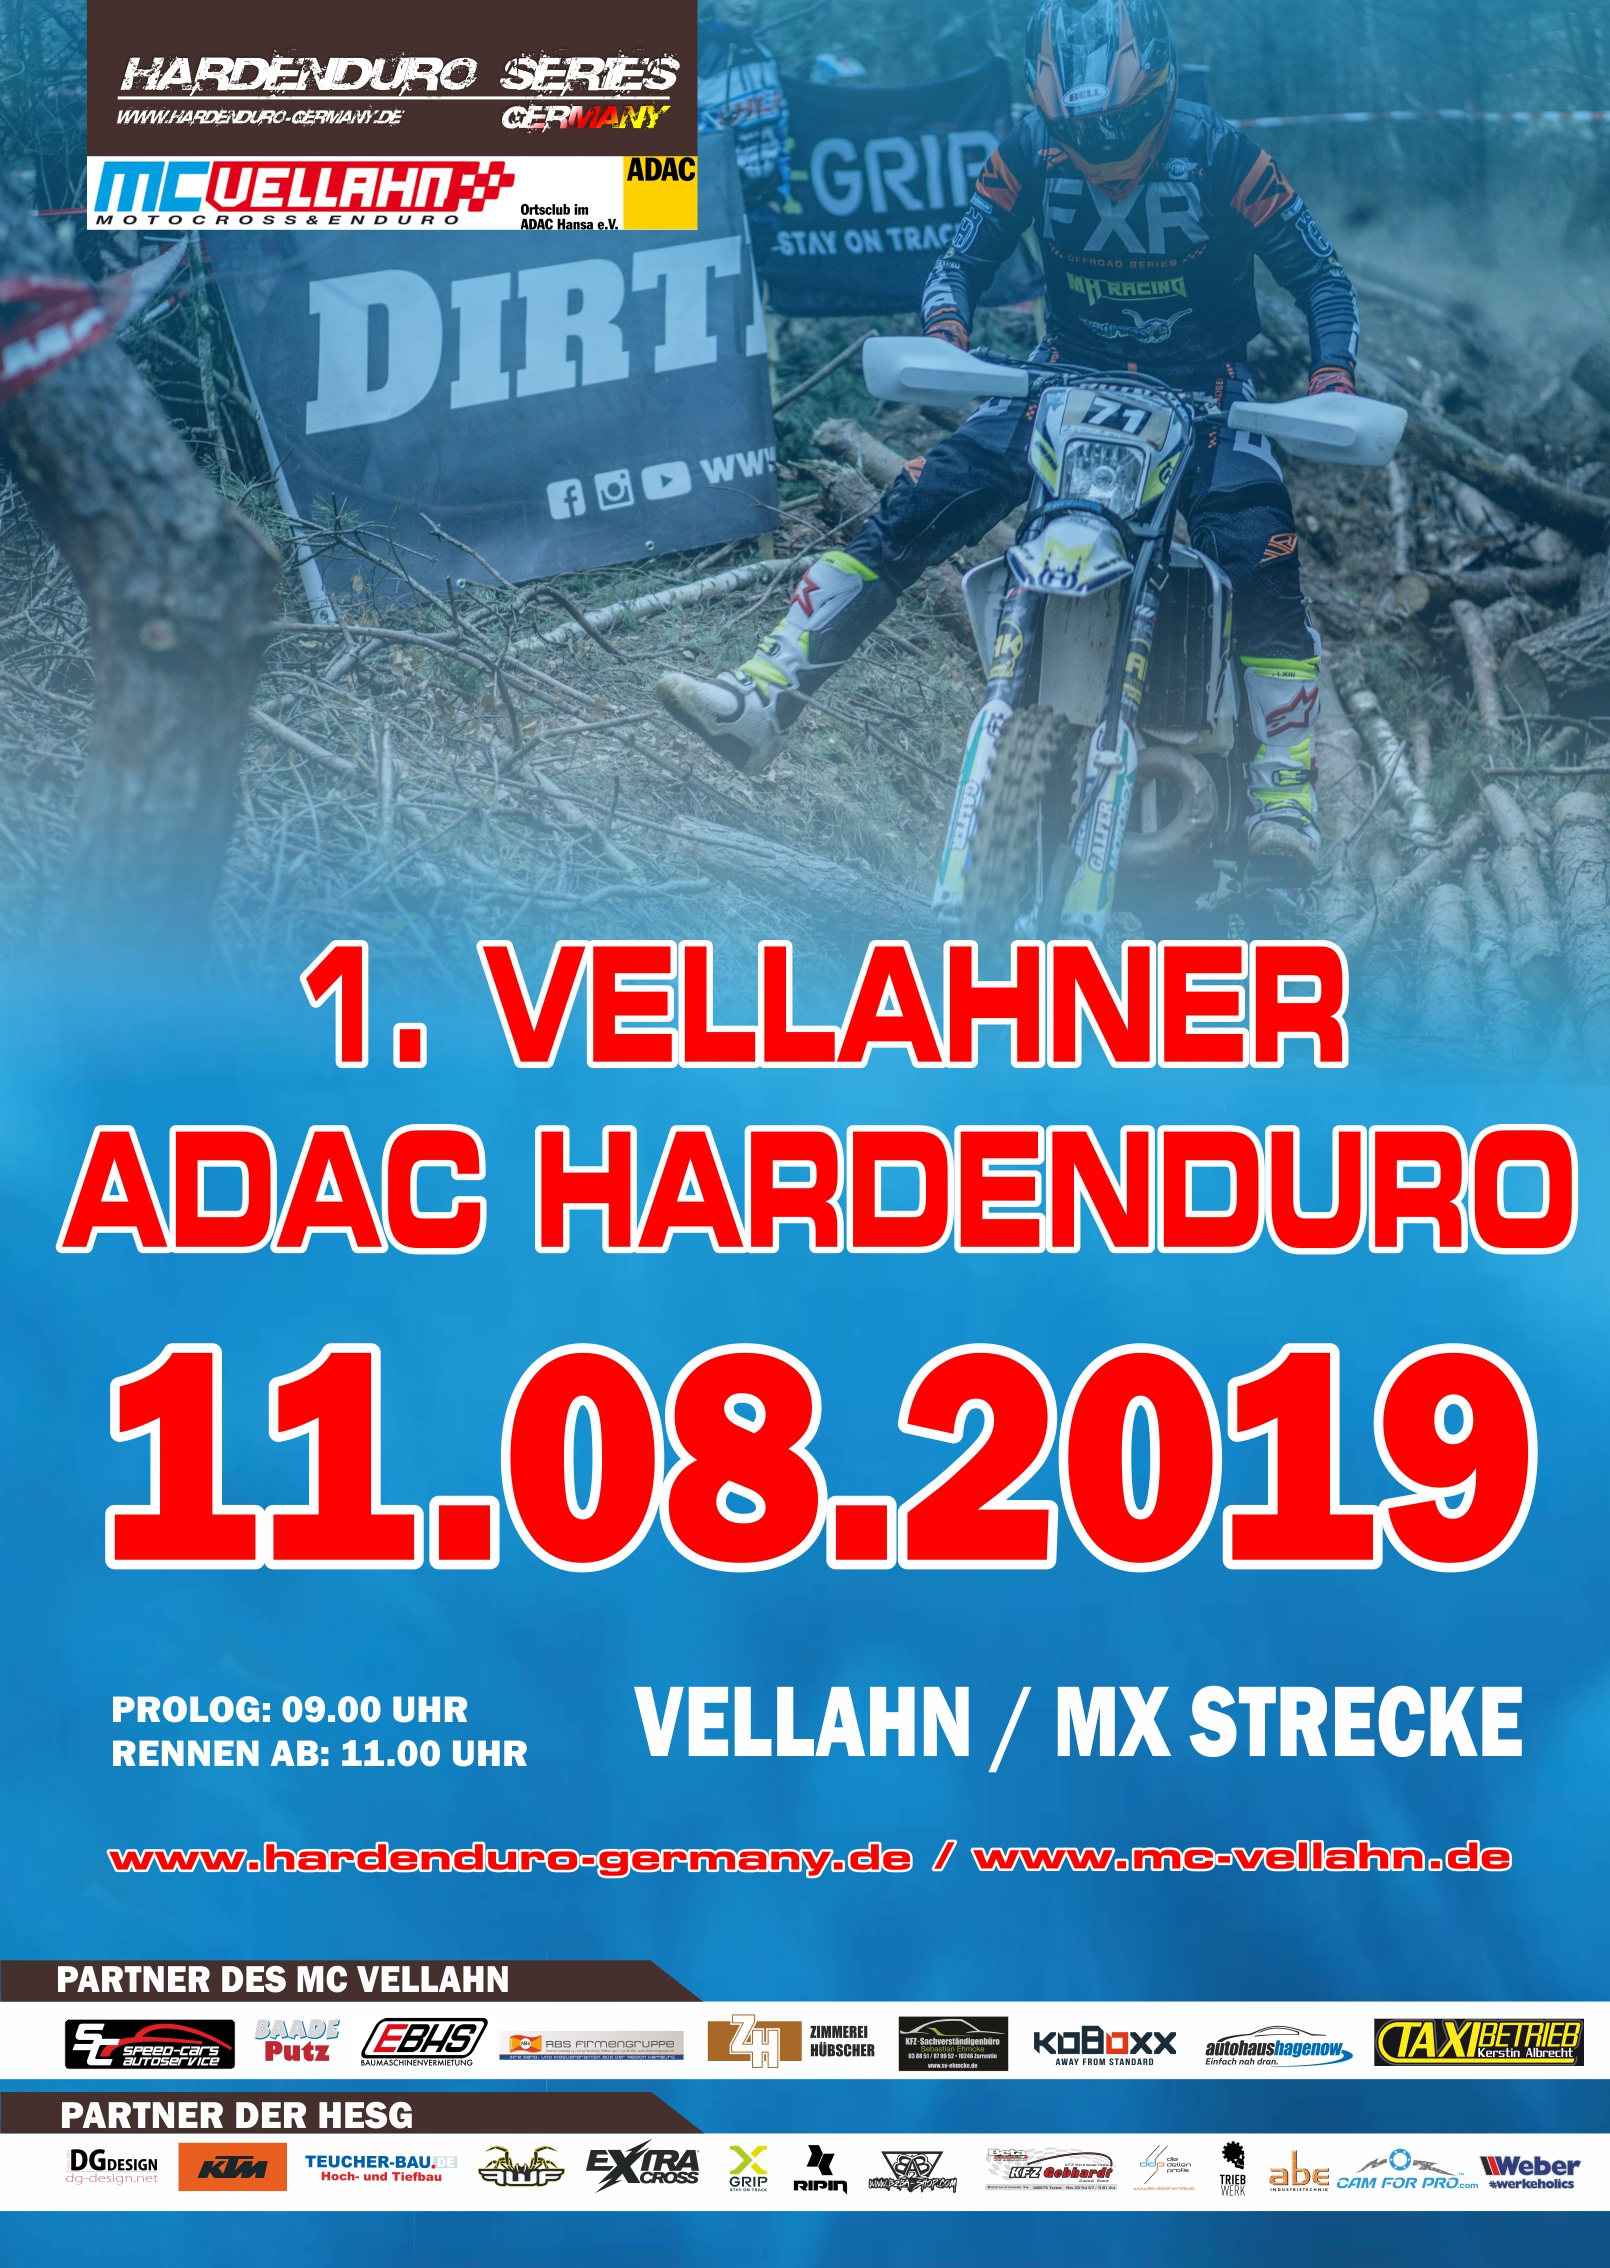 HARD Enduro Vellahn 2019